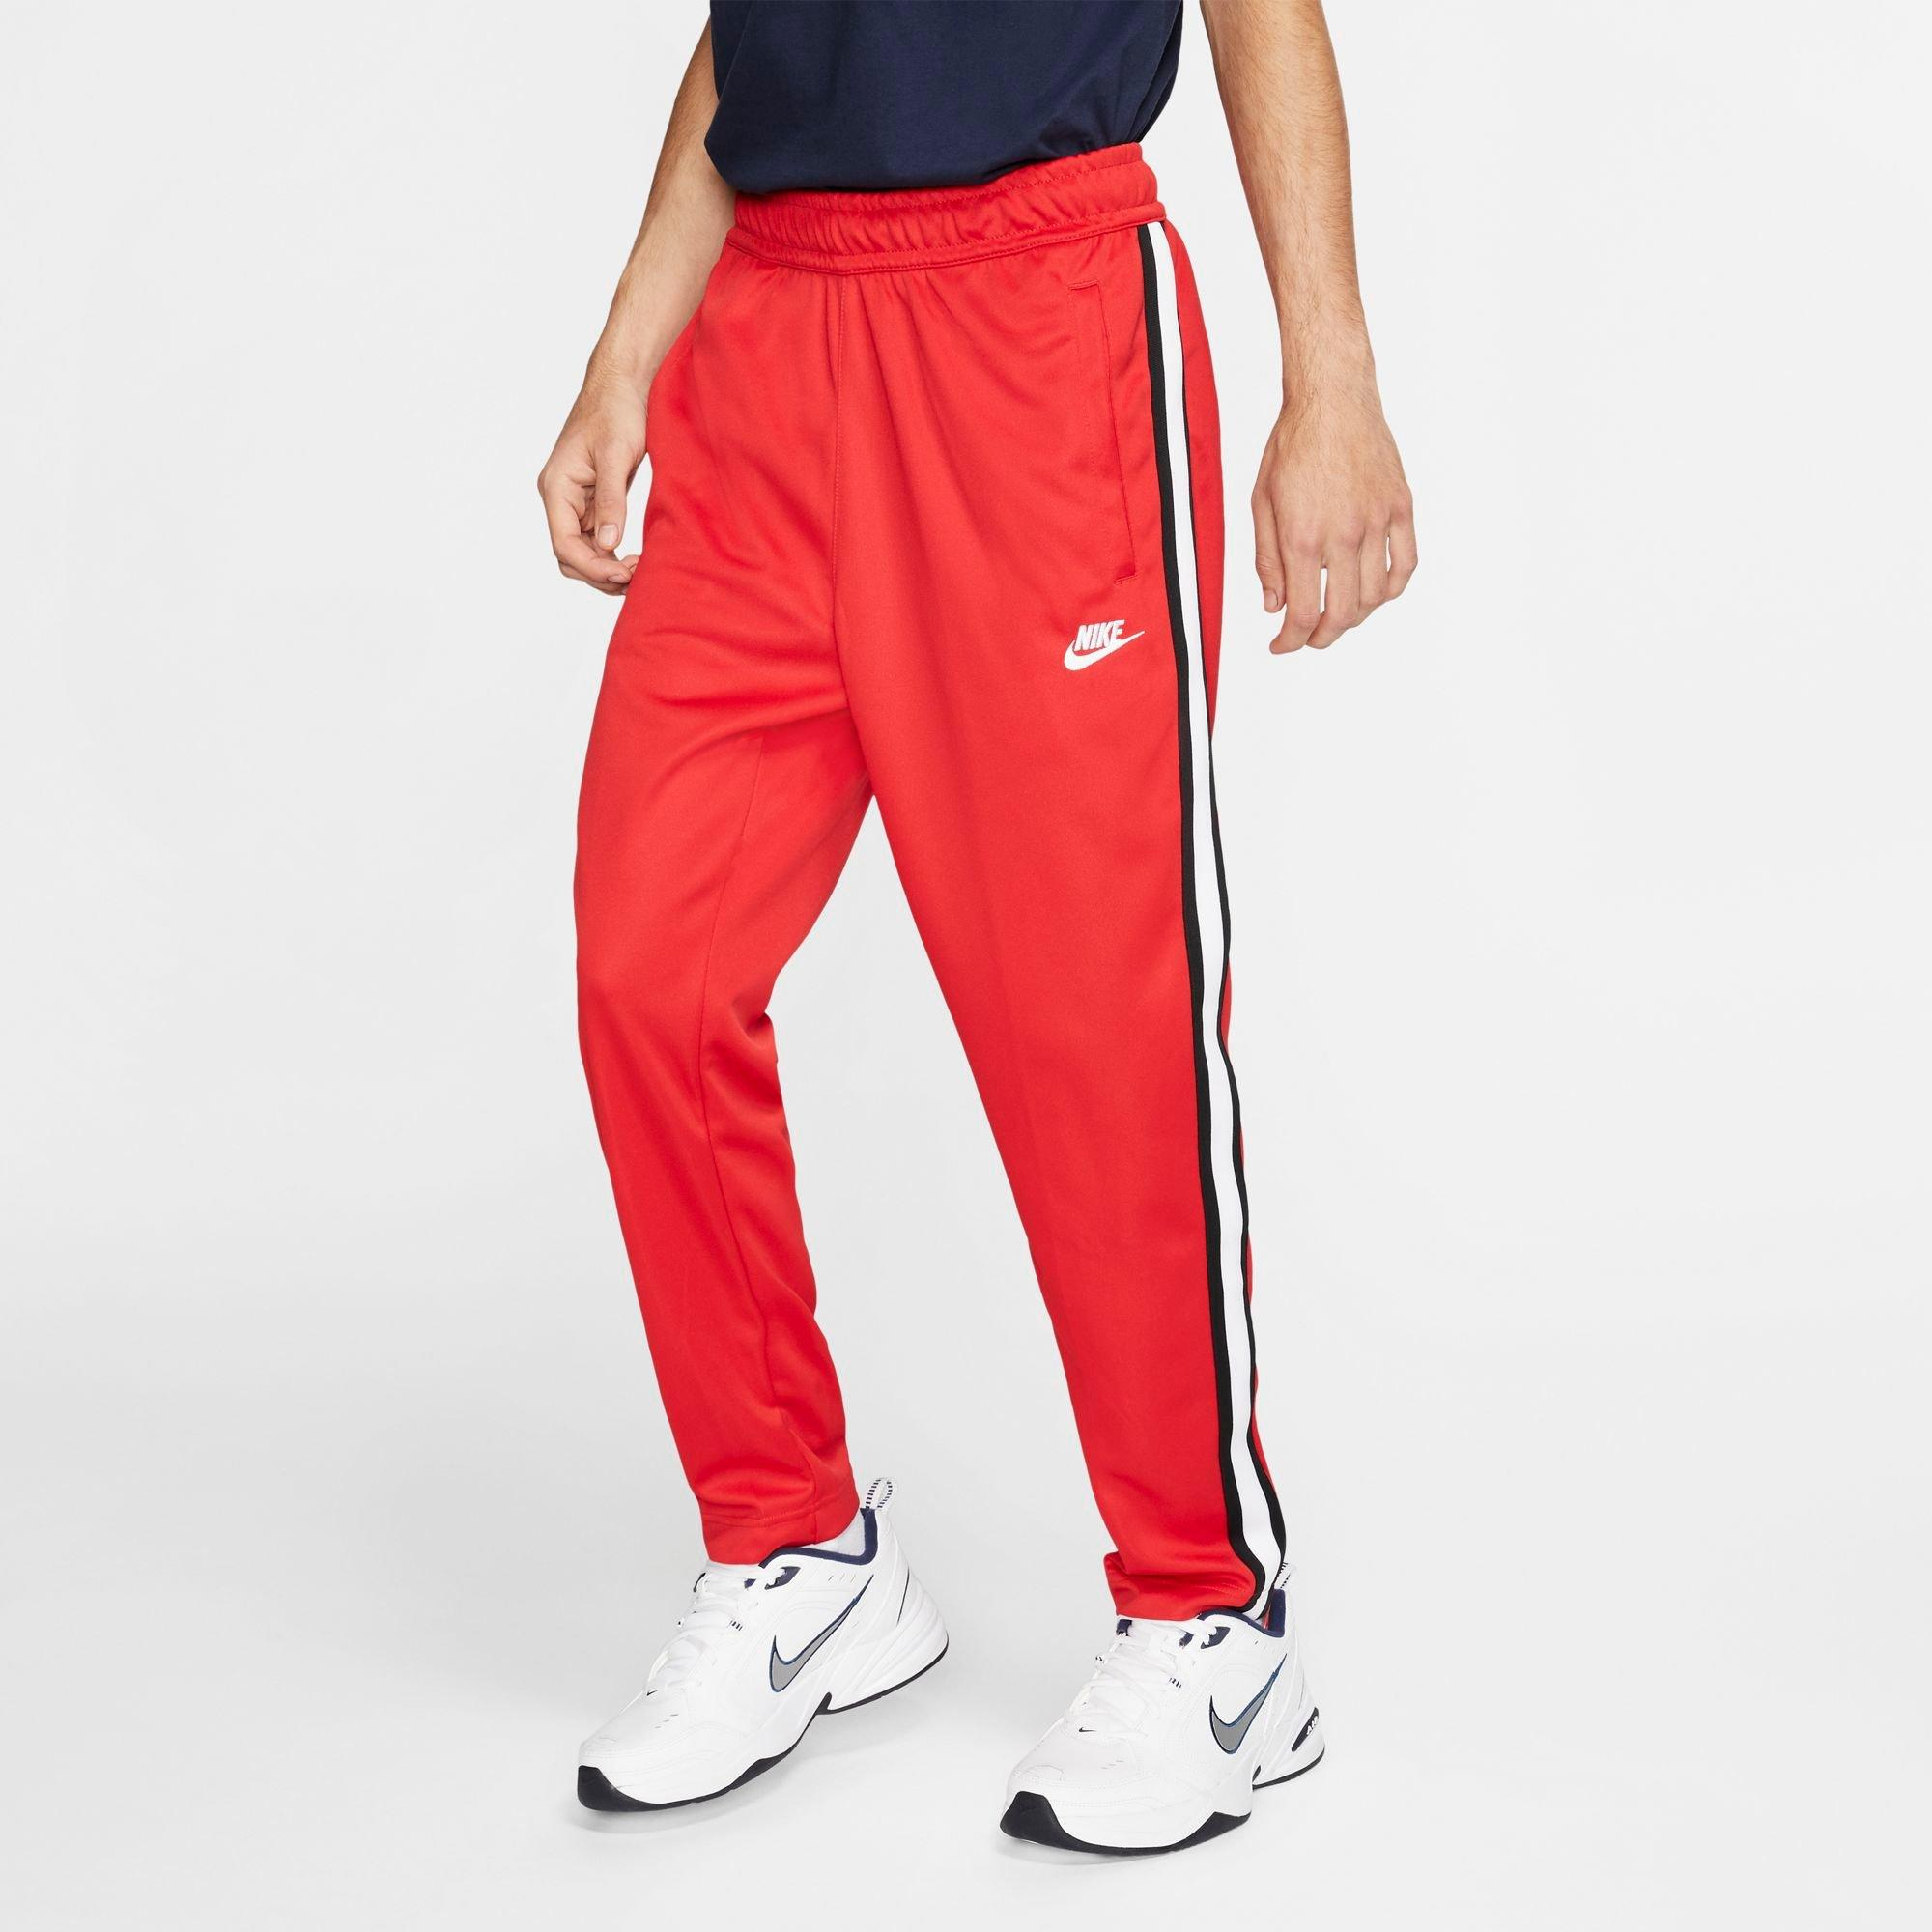 corte largo Padre Admitir  Nike Men's Sportswear N98 Tribute Pants - Hibbett | City Gear